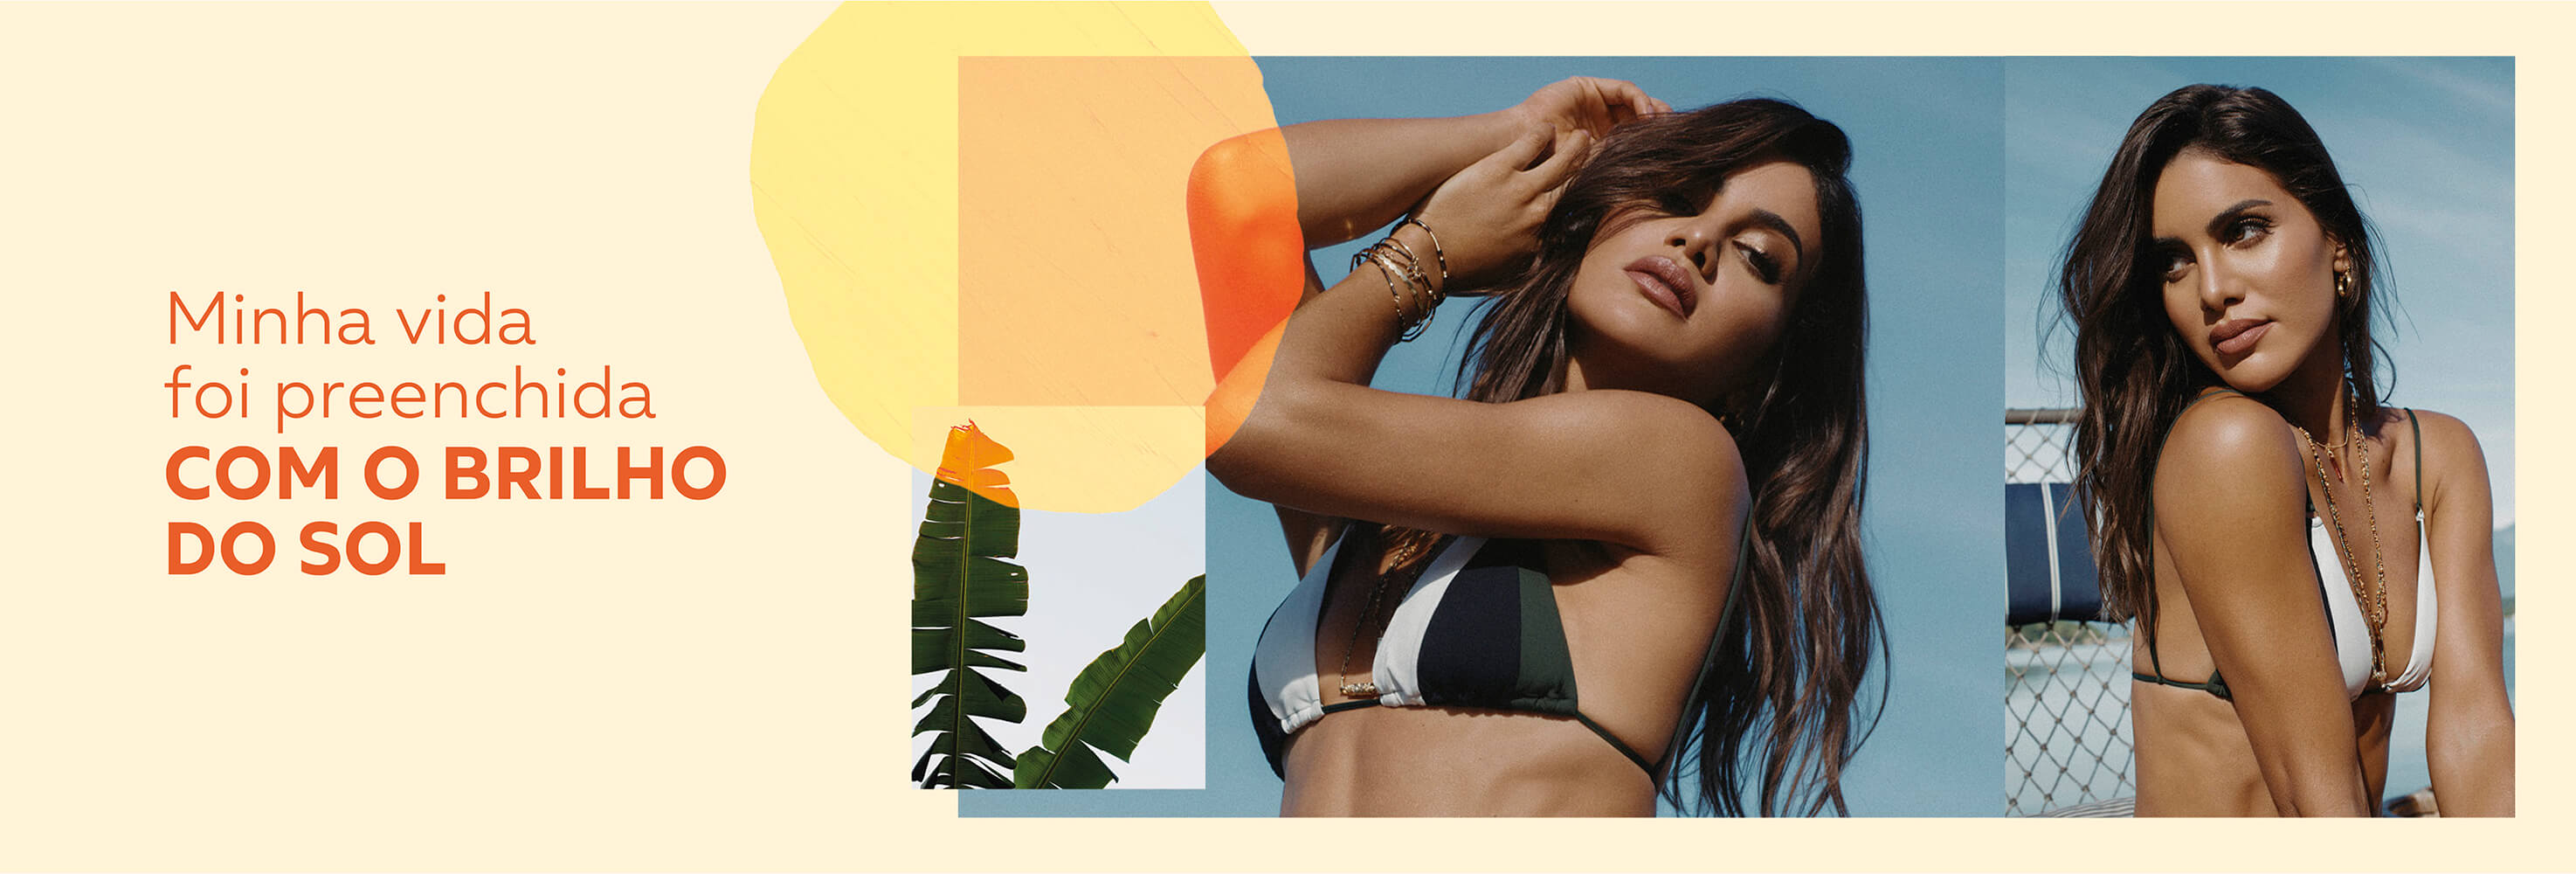 banner-1-new-beach-colecao-2